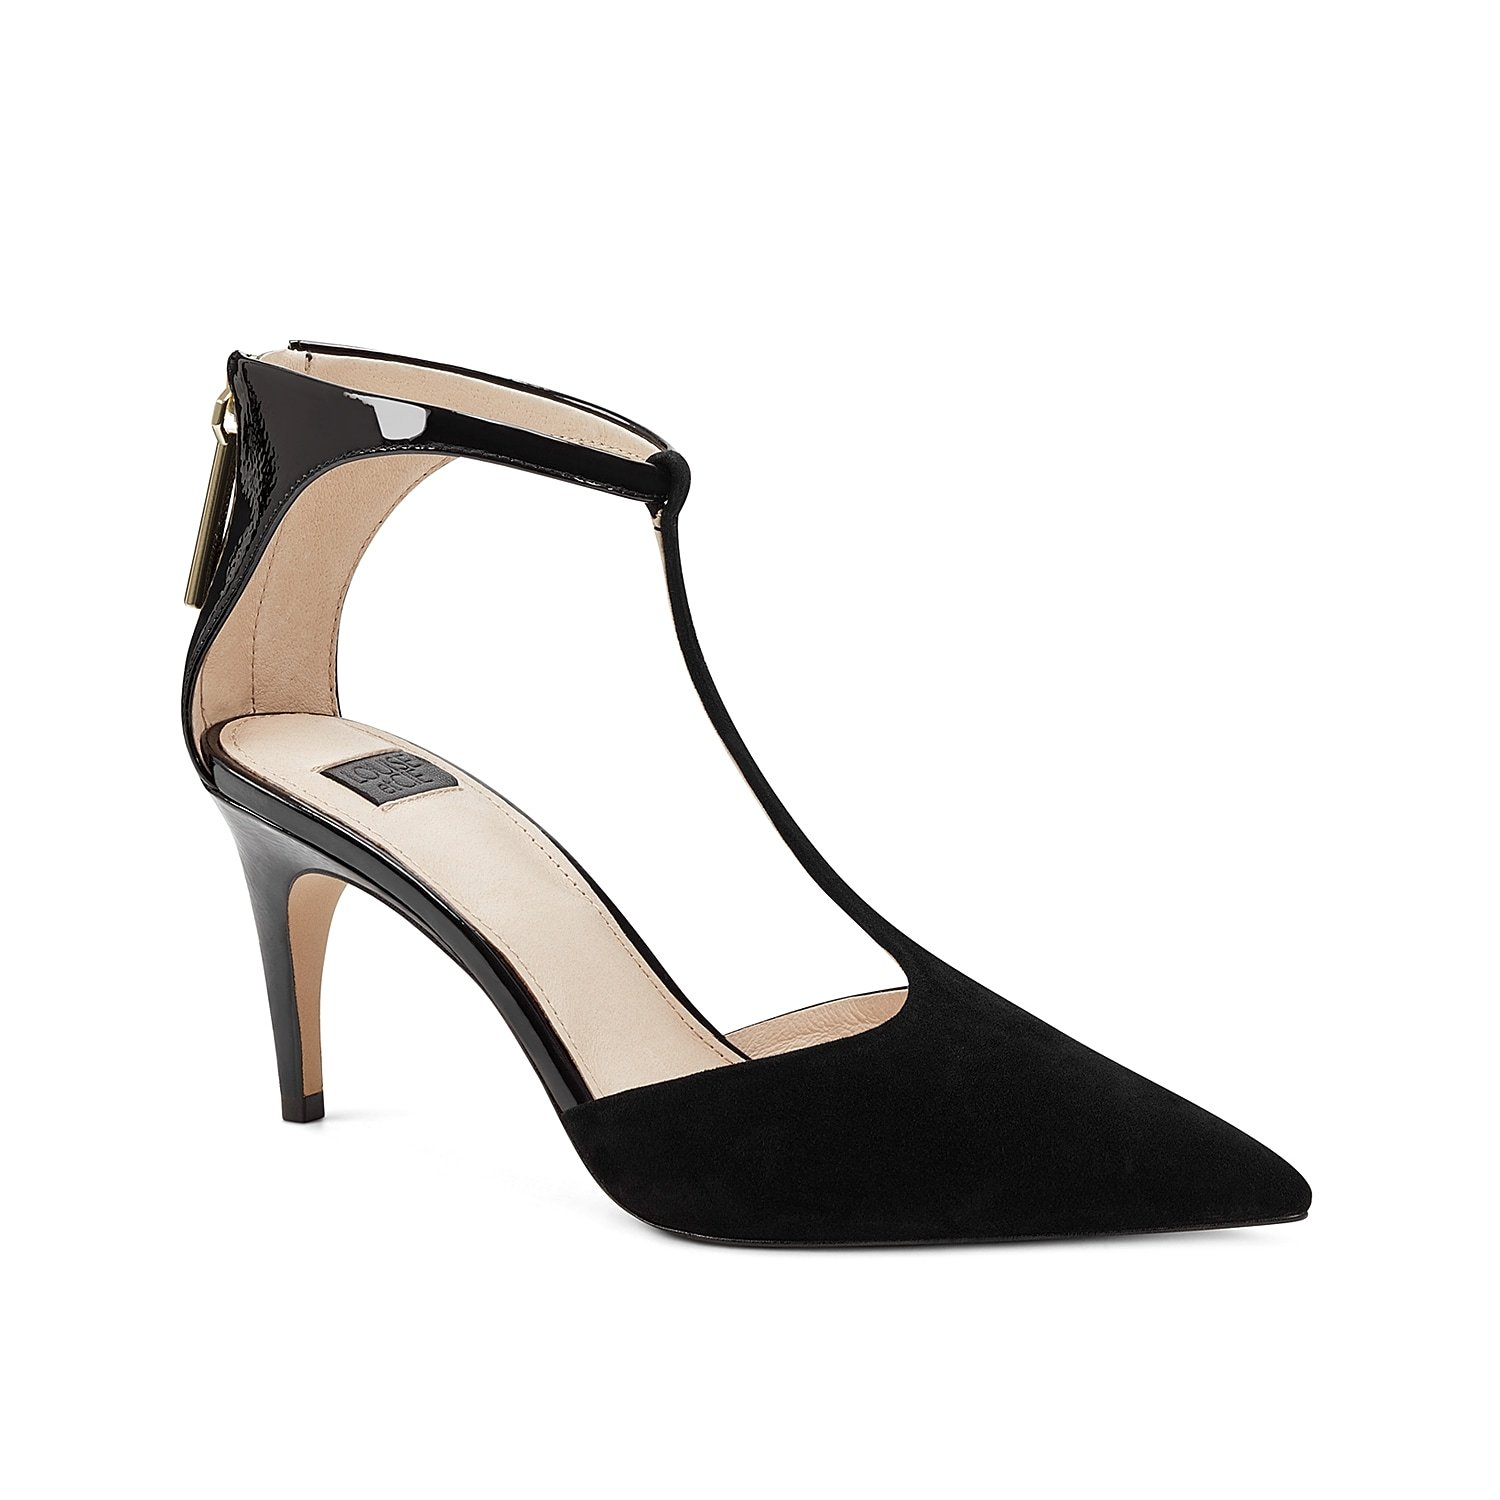 Earn a reputation for your glam looks with the Louise Et Cie Kalona dress pump. Lush upper with pointed toe, slim midfoot strap and buckled ankle strap is backed by a durable rubber sole and minimal heel for lasting support.